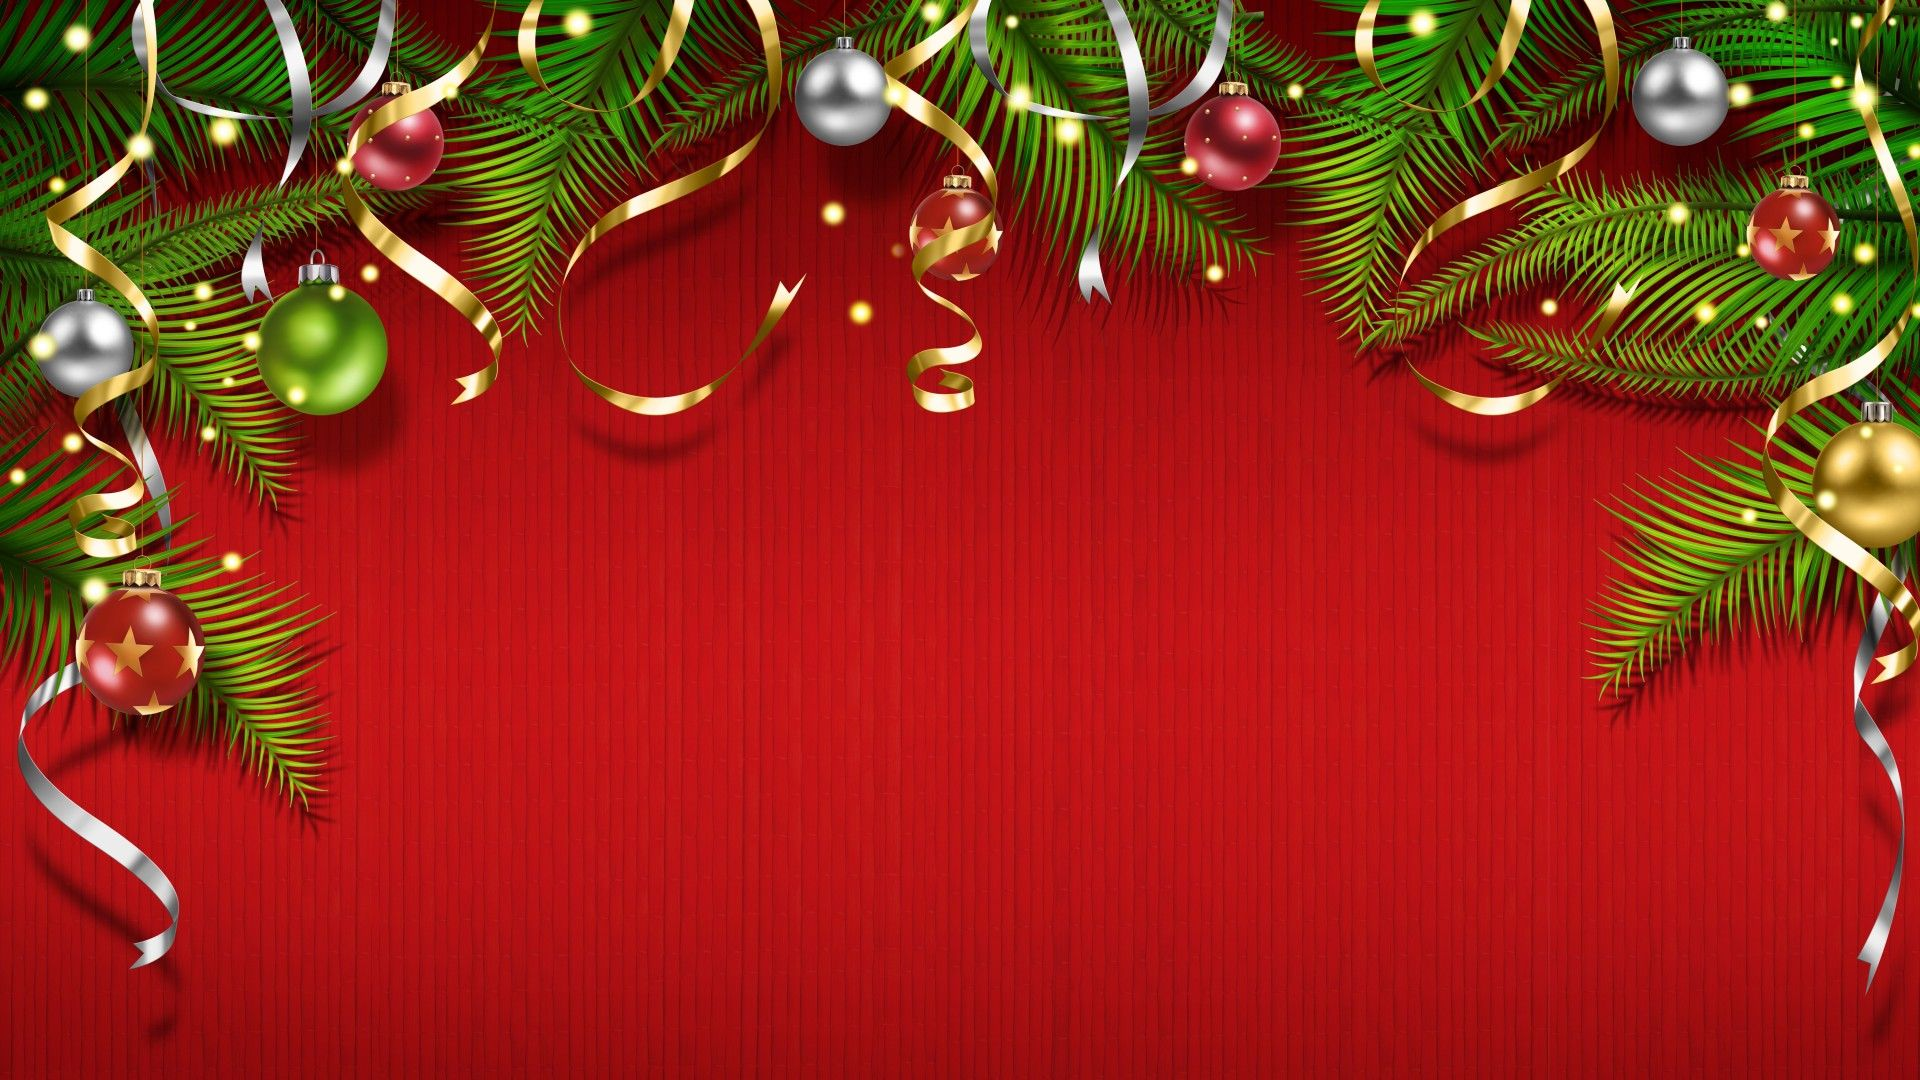 Christmas Decorations Wallpaper Christmas Decorations Hd Christmas Wallpaper Hd Merry Christmas Images Happy Christmas Day